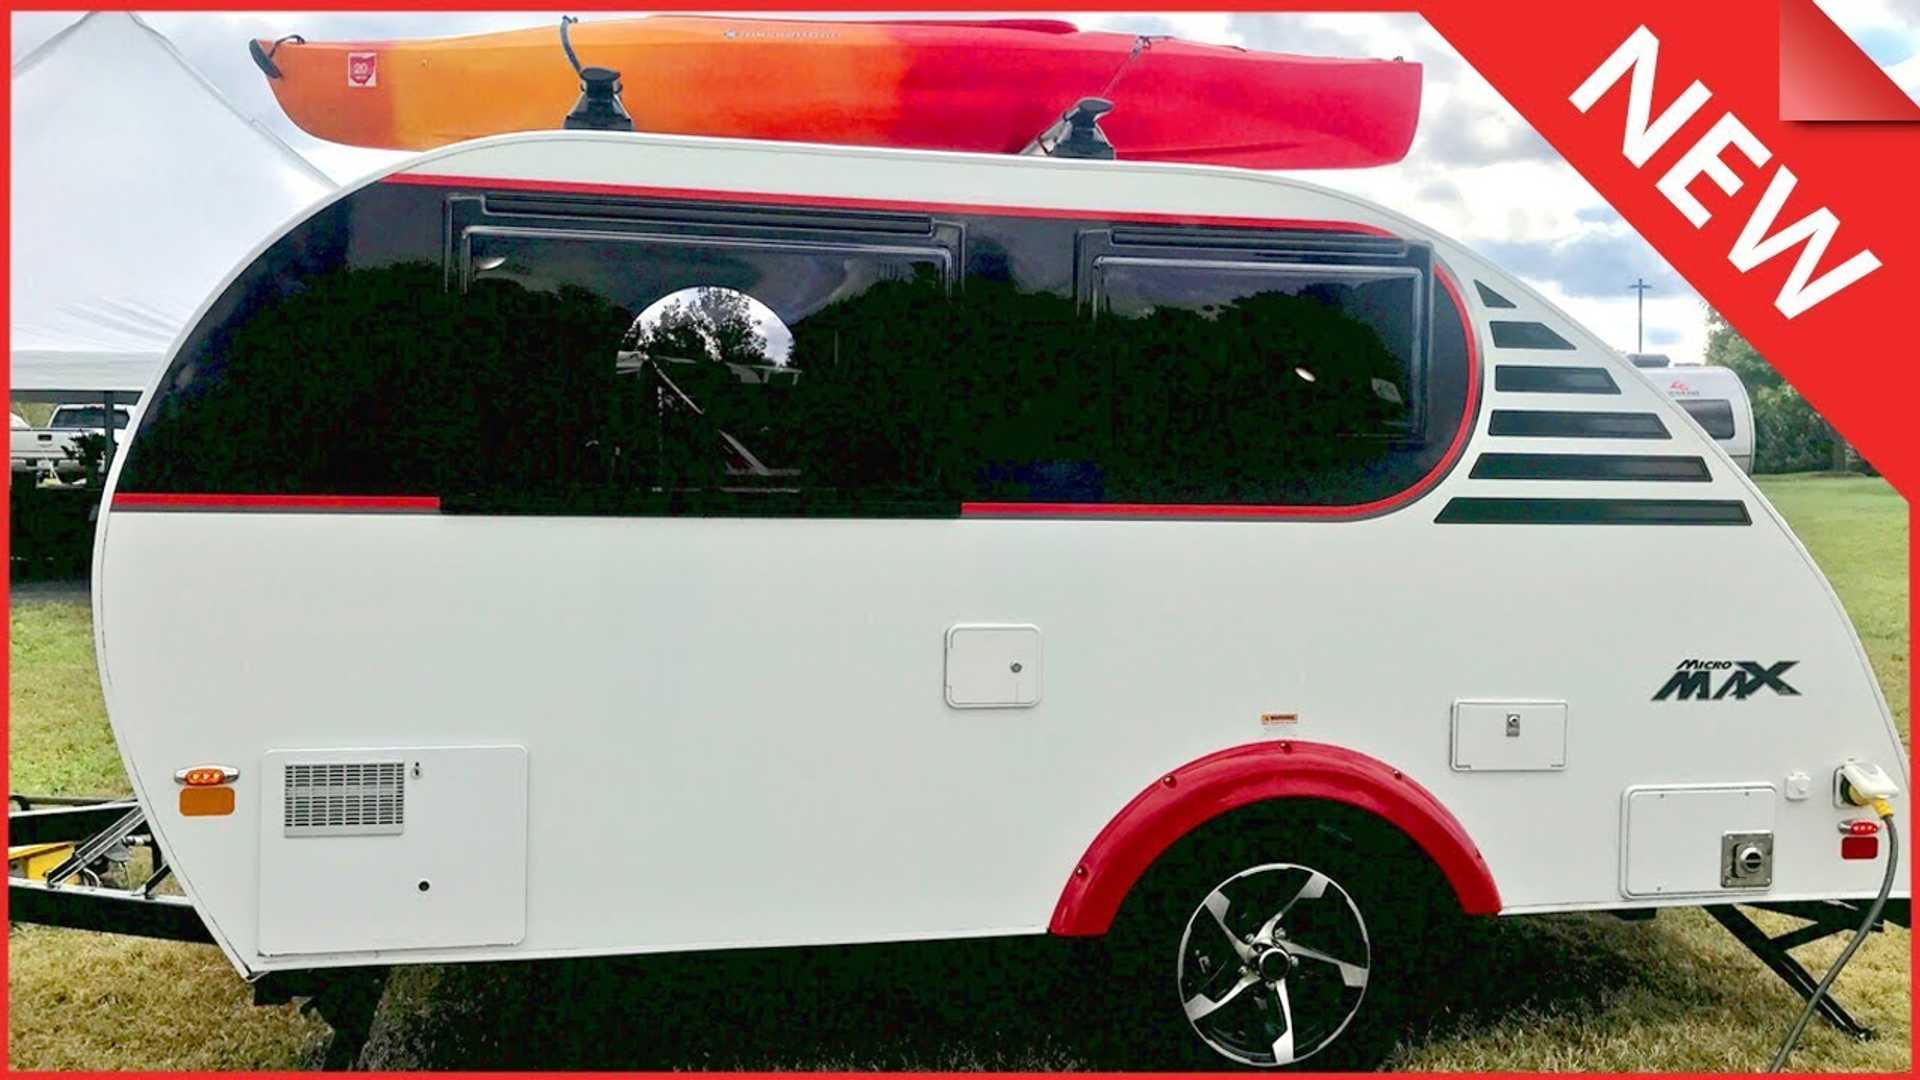 New Little Guy MicroMax Trailer Can't Get Any Smaller